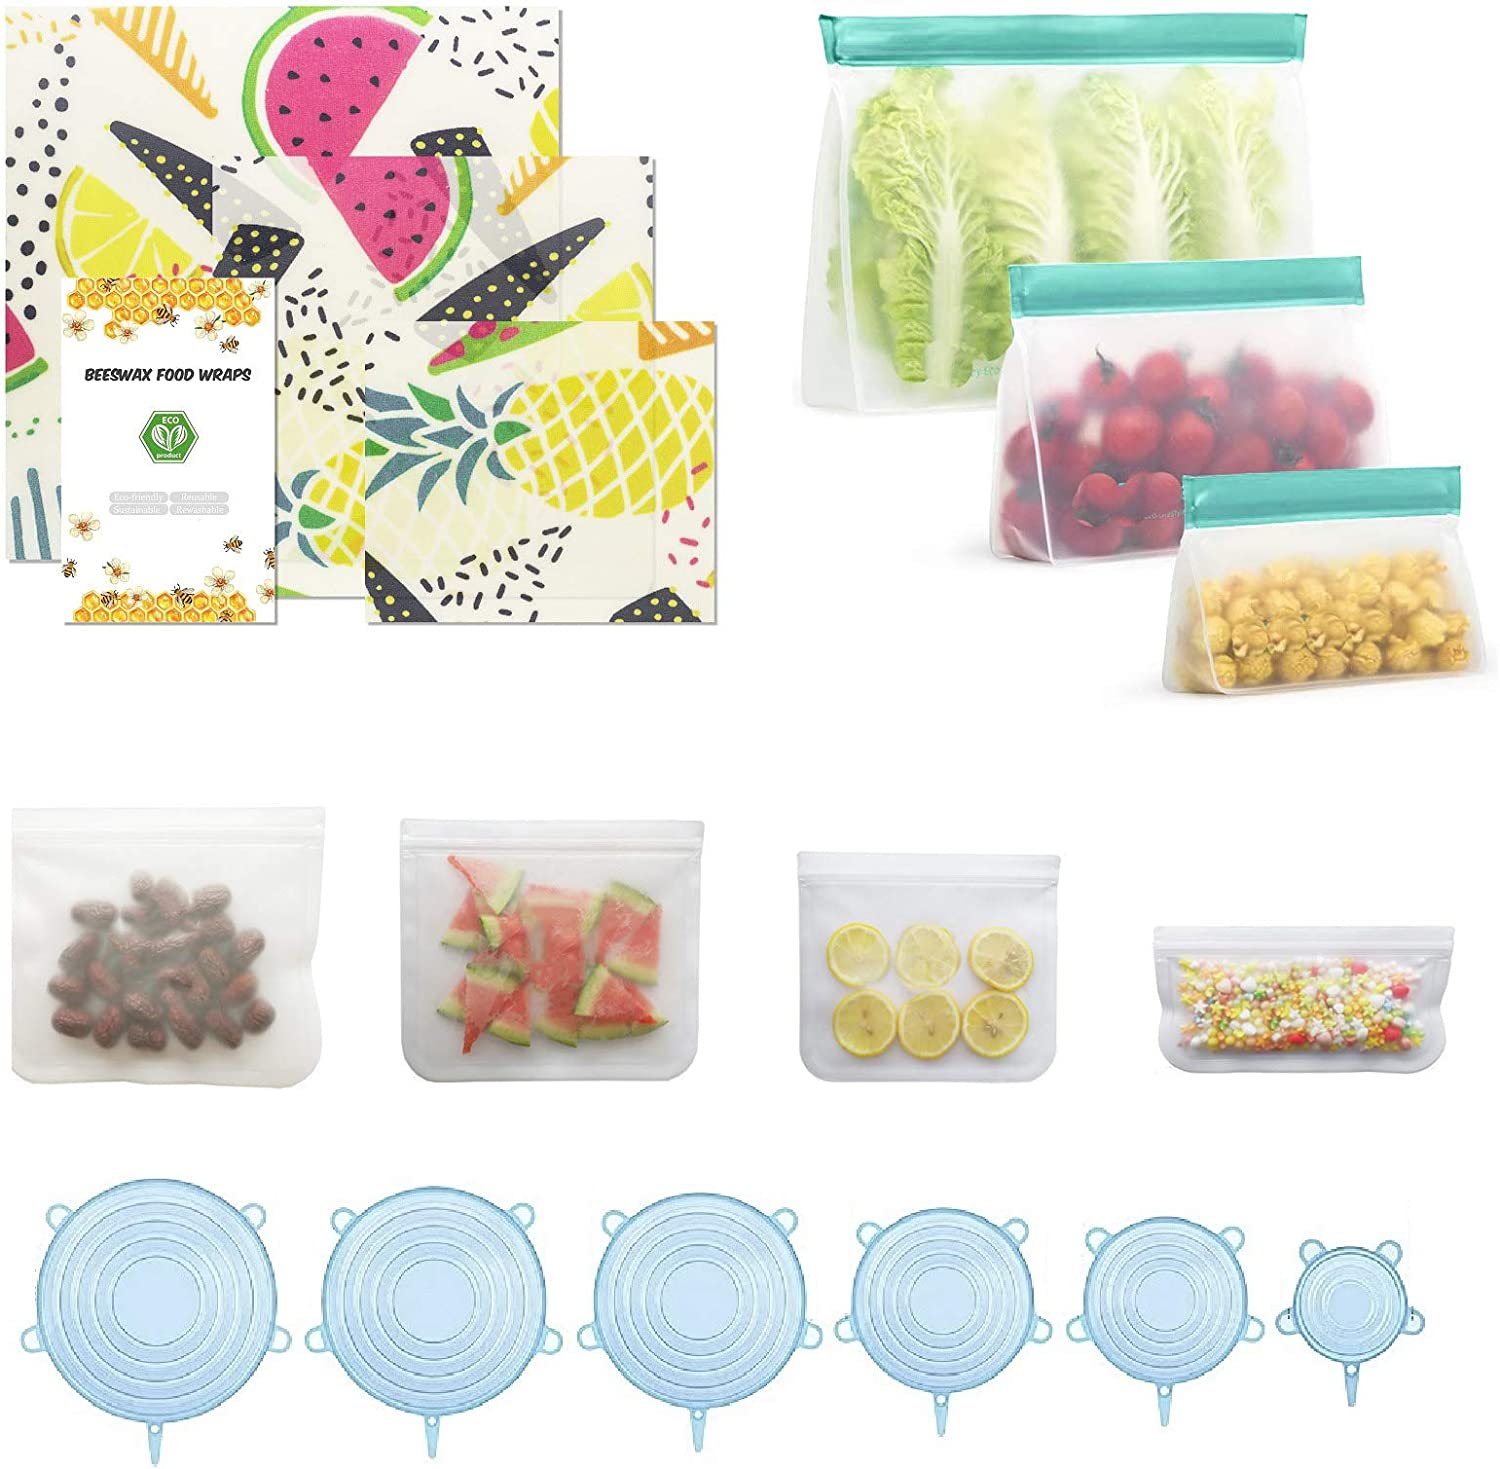 16 Pcs-Beeswax Wrap 3 Pcs & BPA FREE Reusable Food Wrap 7 Pcs & Silicone Stretch Lid 6 Pcs,Eco-Friendly Freezer Preservation Bags for Vegetable,Fruit,Snack,Lunch,Cereals